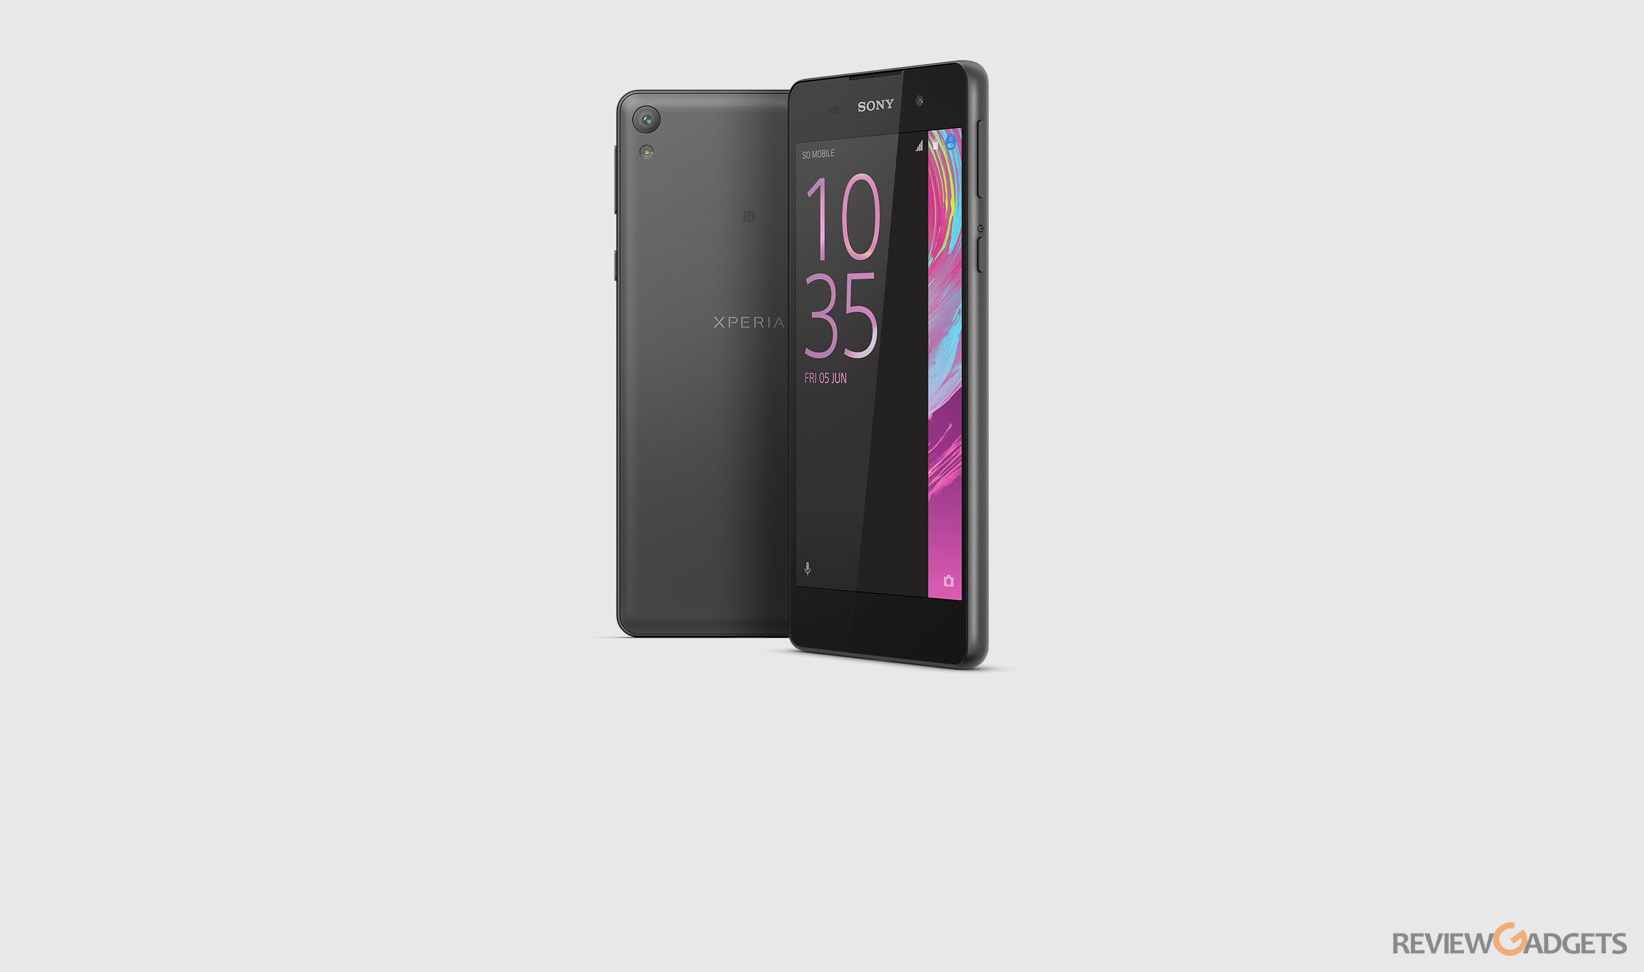 Sony Xperia E5 Specifications and Features